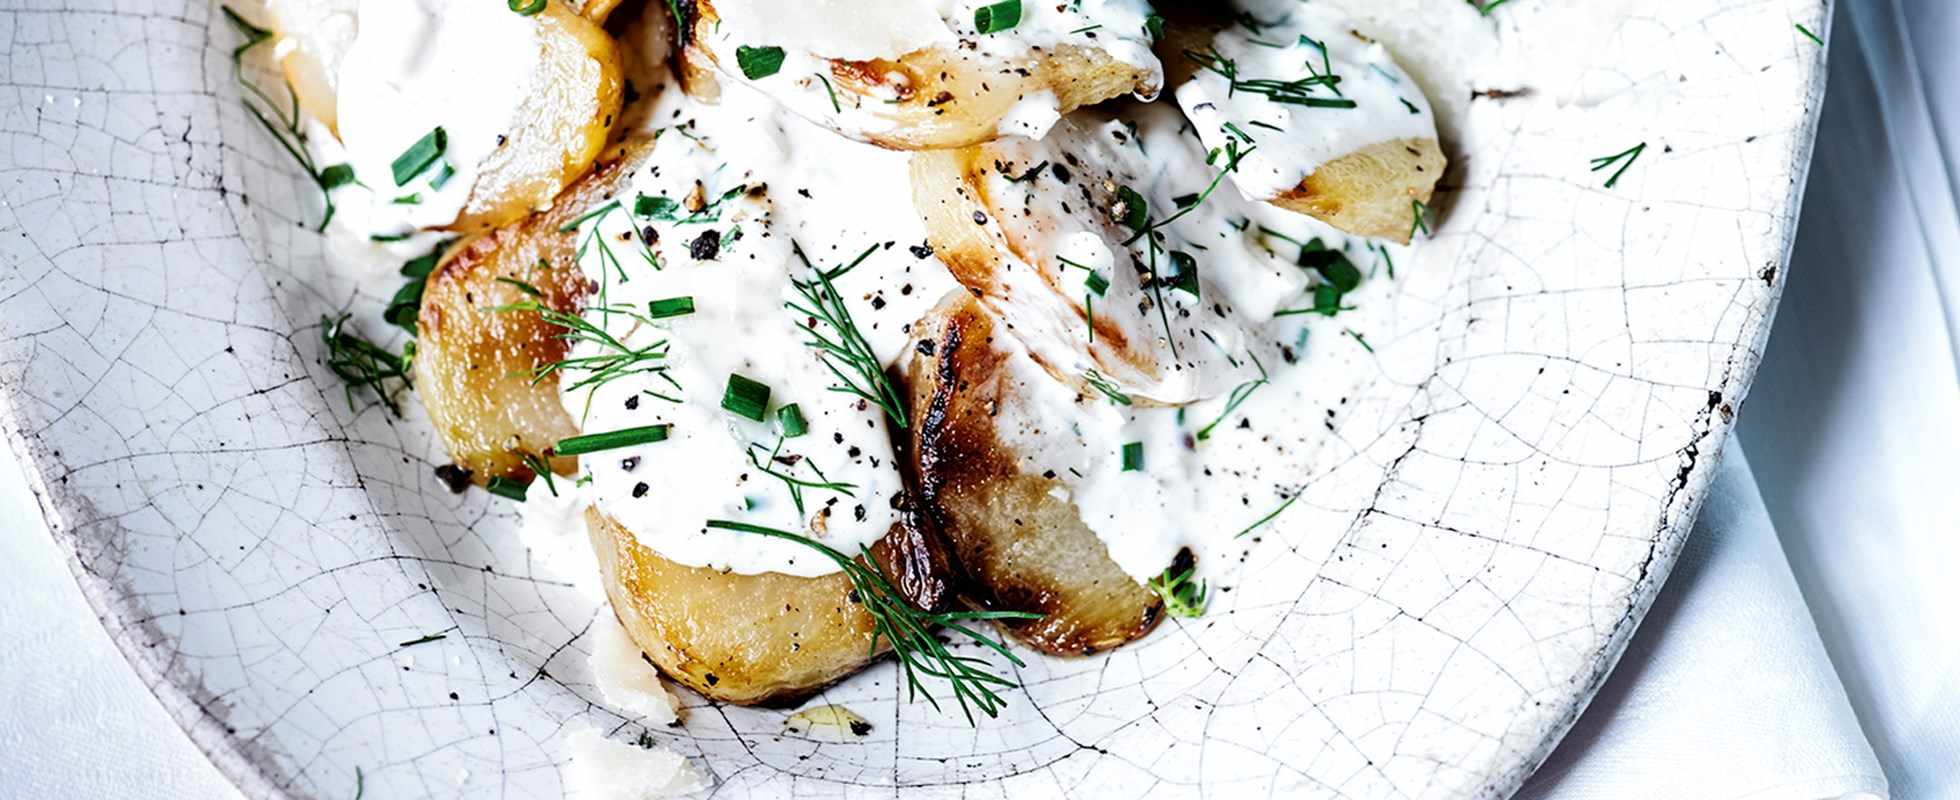 Roast kohlrabi with ranch dressing